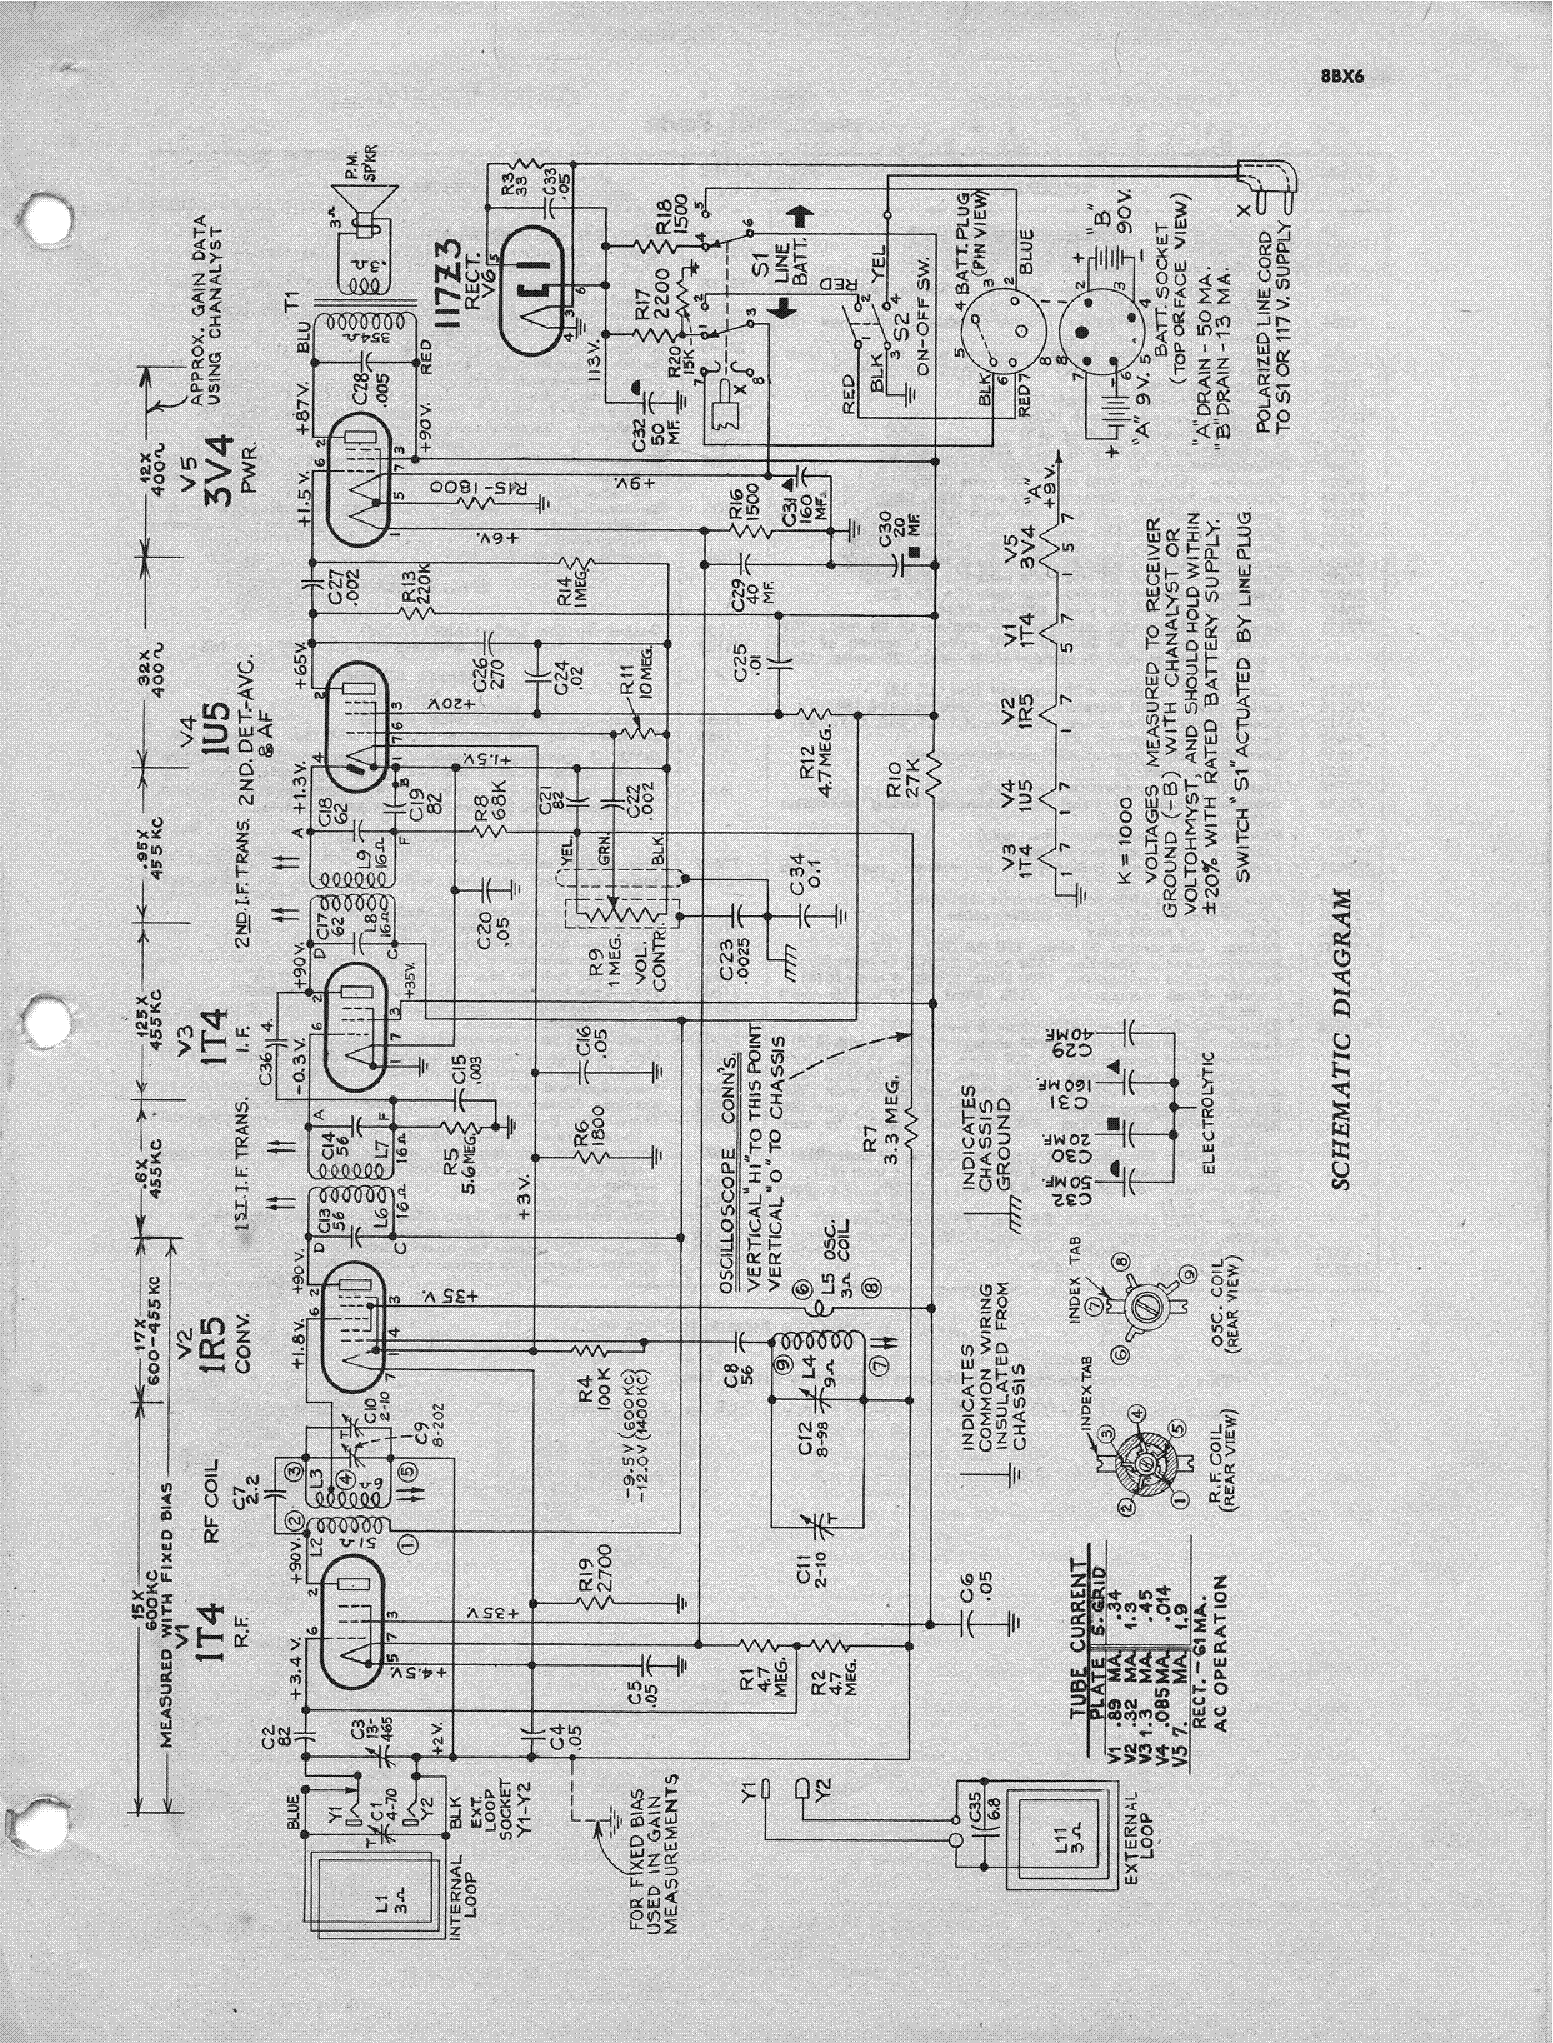 RCA 8BX6.SM Service Manual download, schematics, eeprom